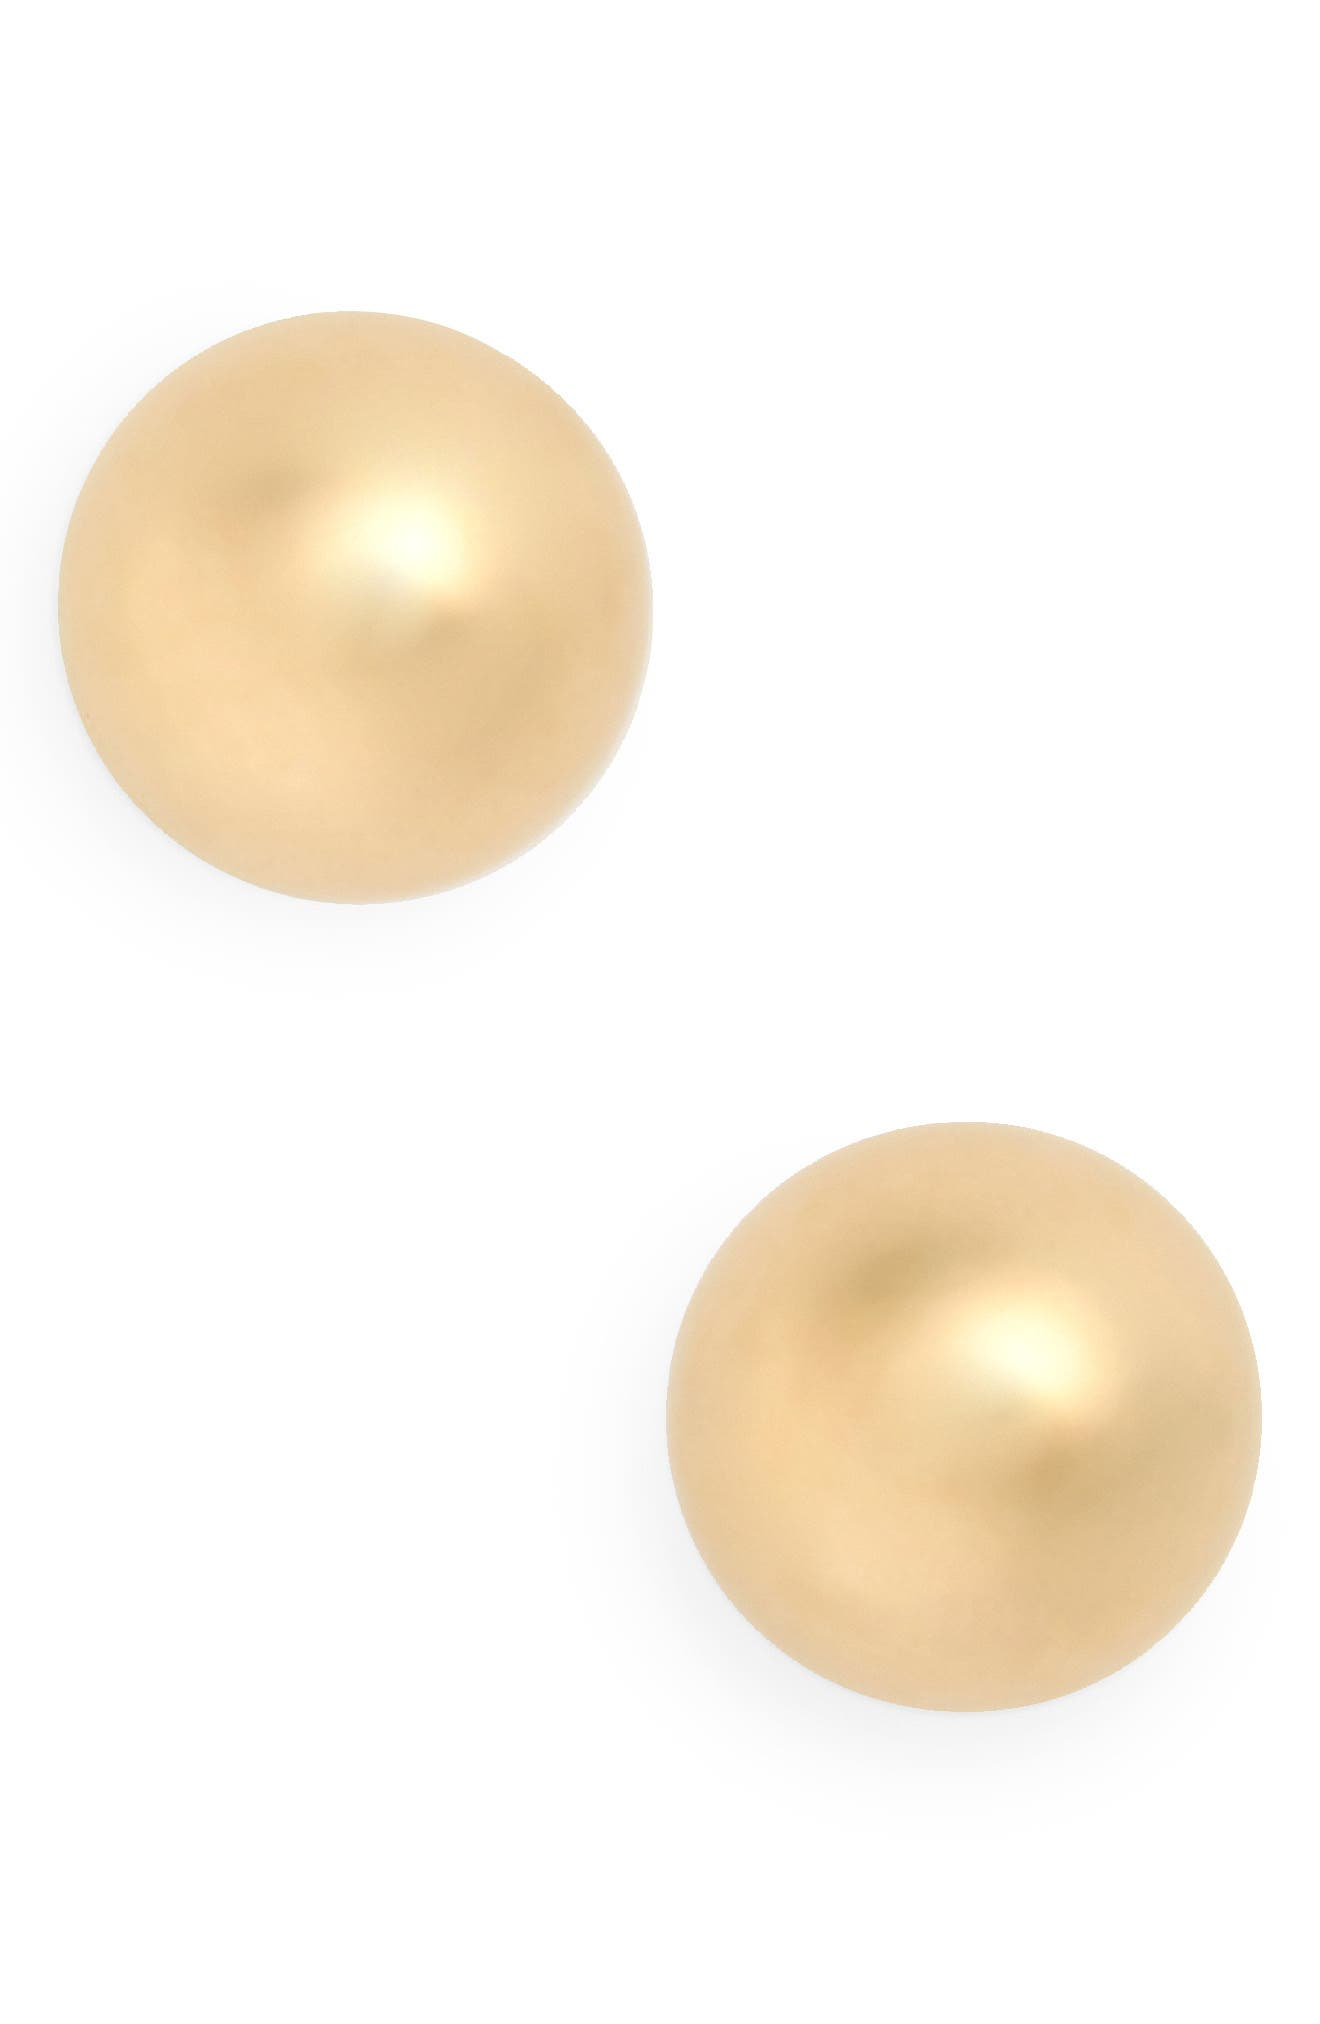 14K Gold Ball Stud Earrings,                         Main,                         color, YELLOW GOLD